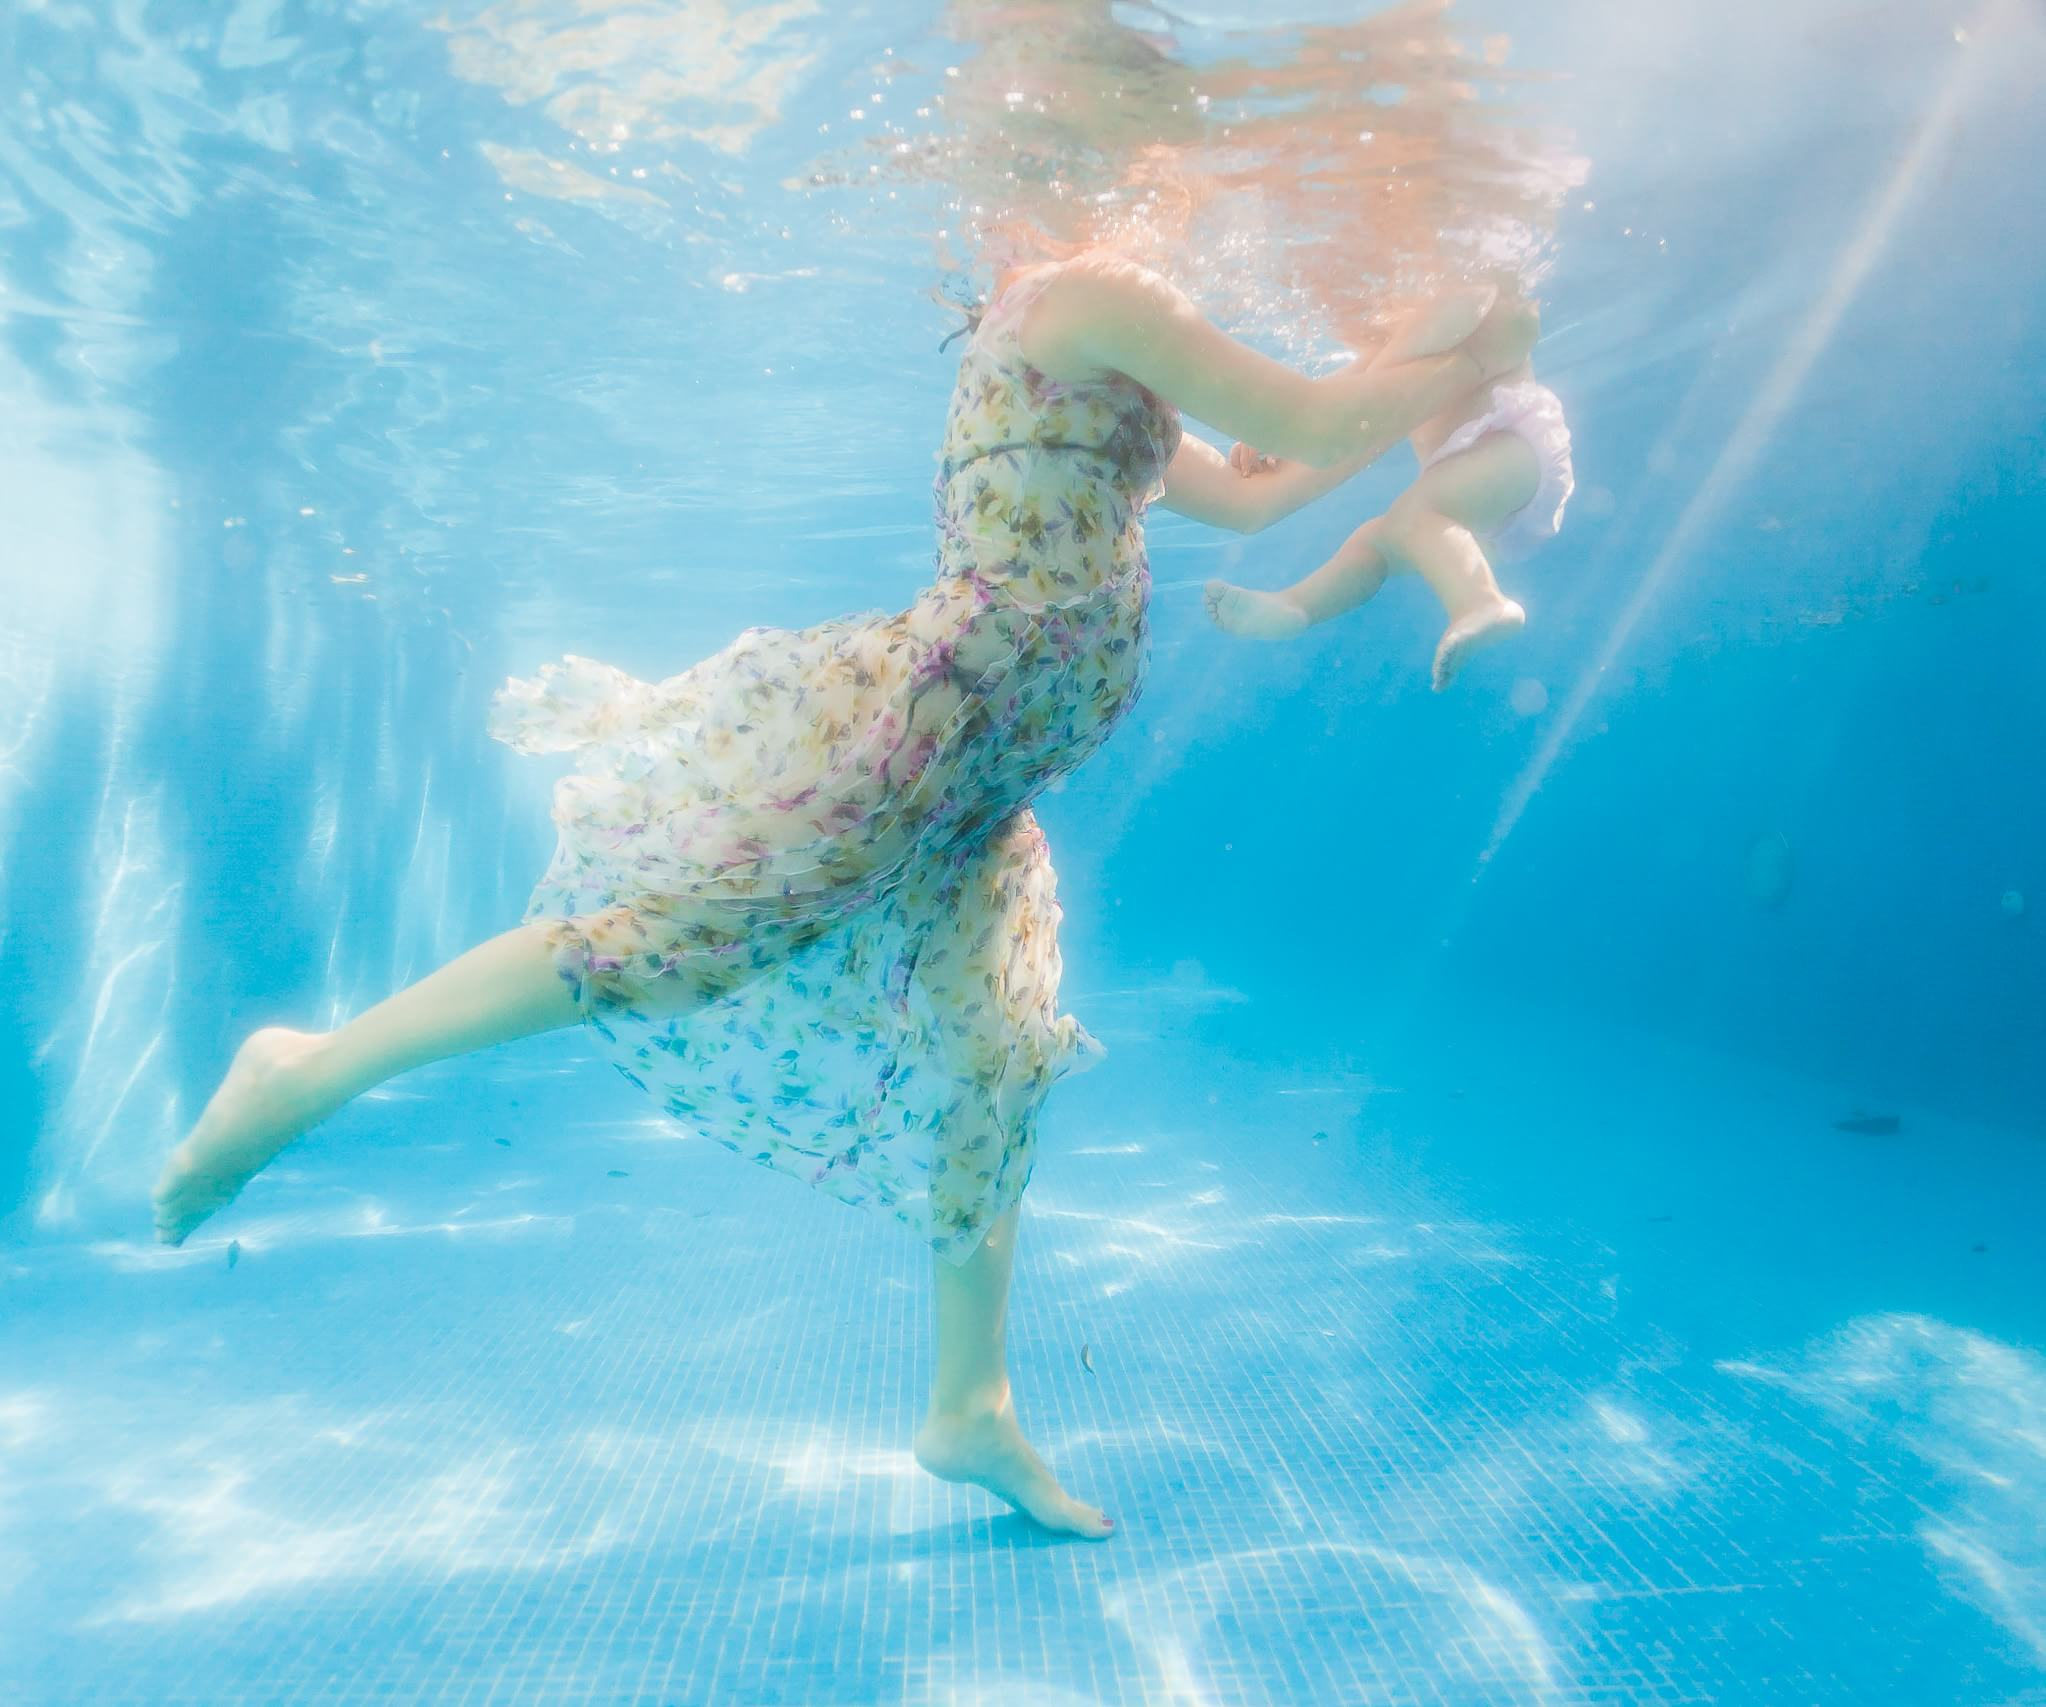 Underwater baby feet by mexico wedding photographers